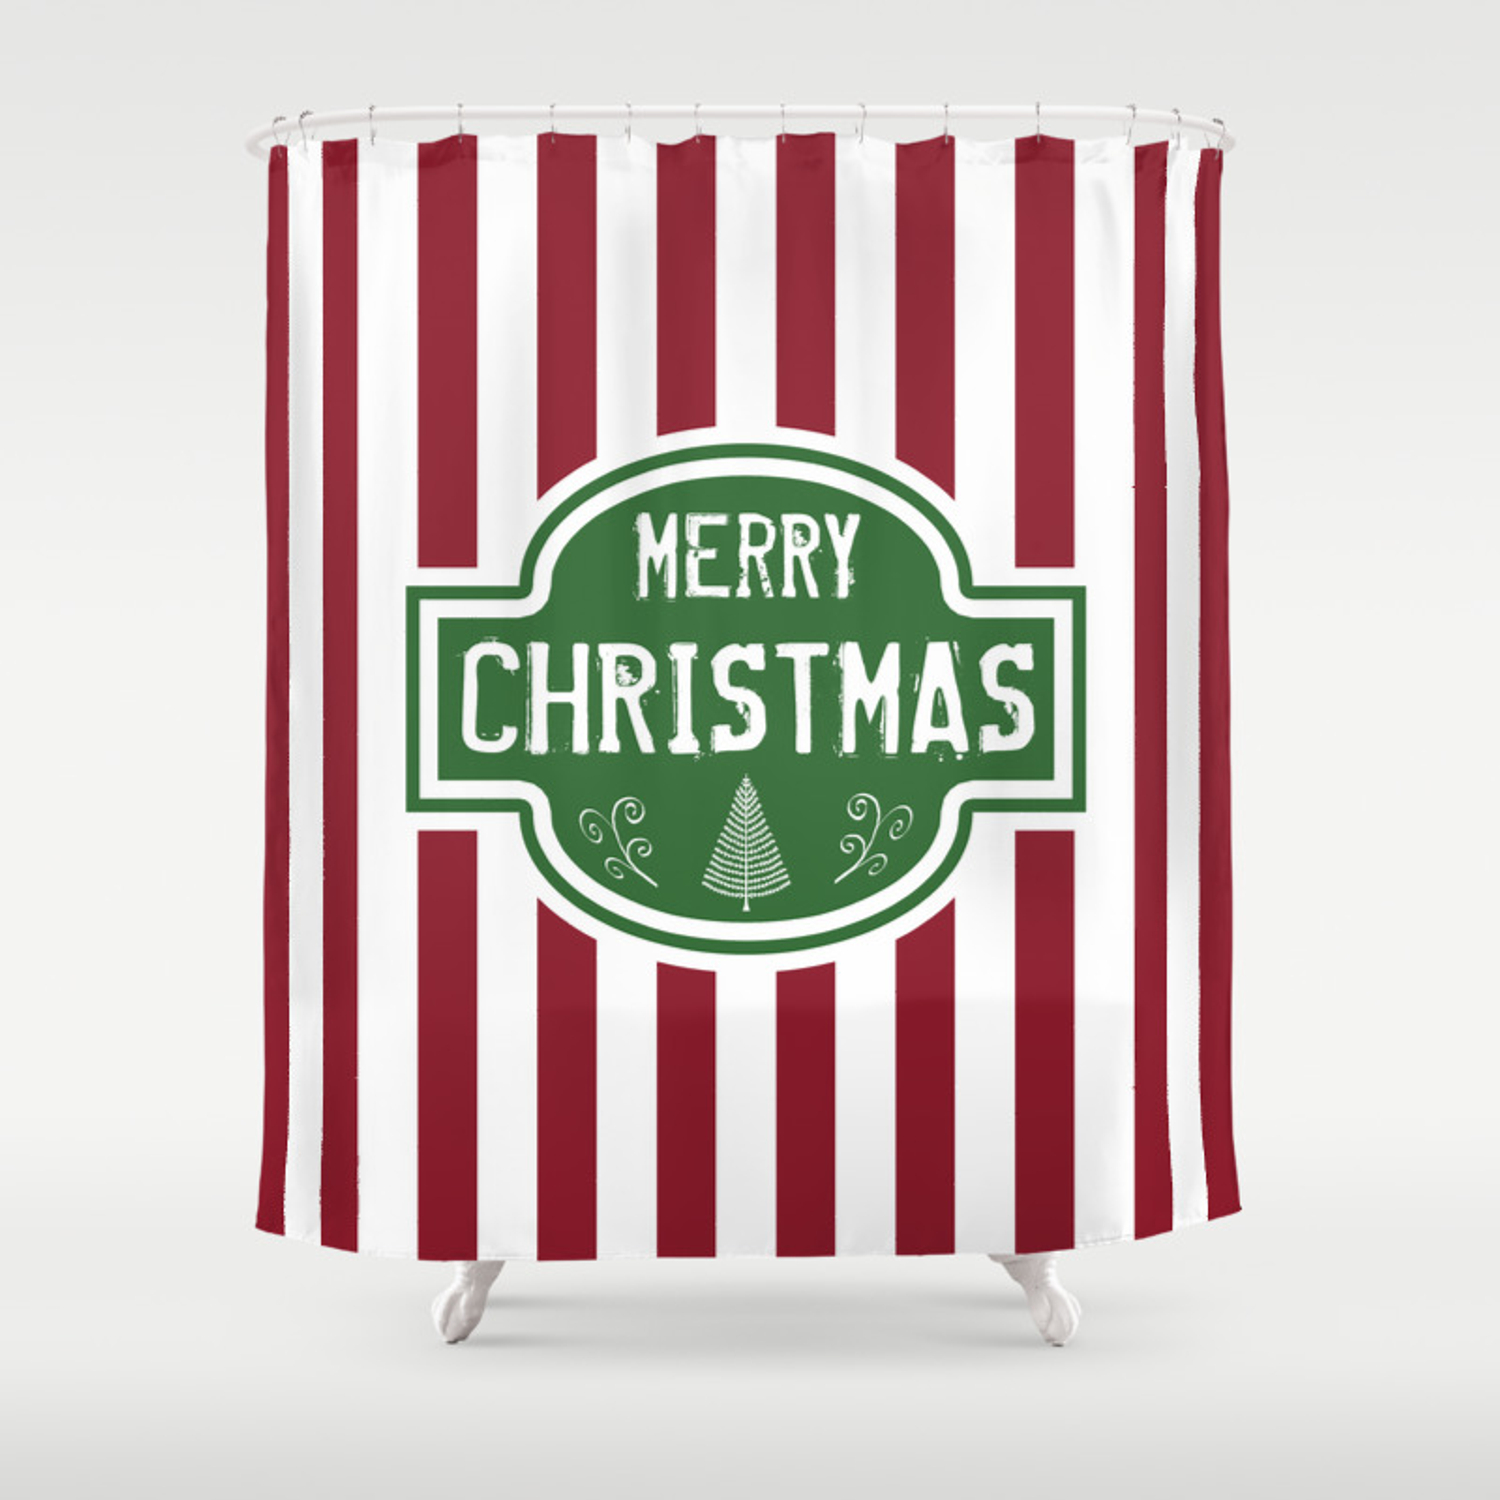 Merry Christmas Red White Stripes Shower Curtain